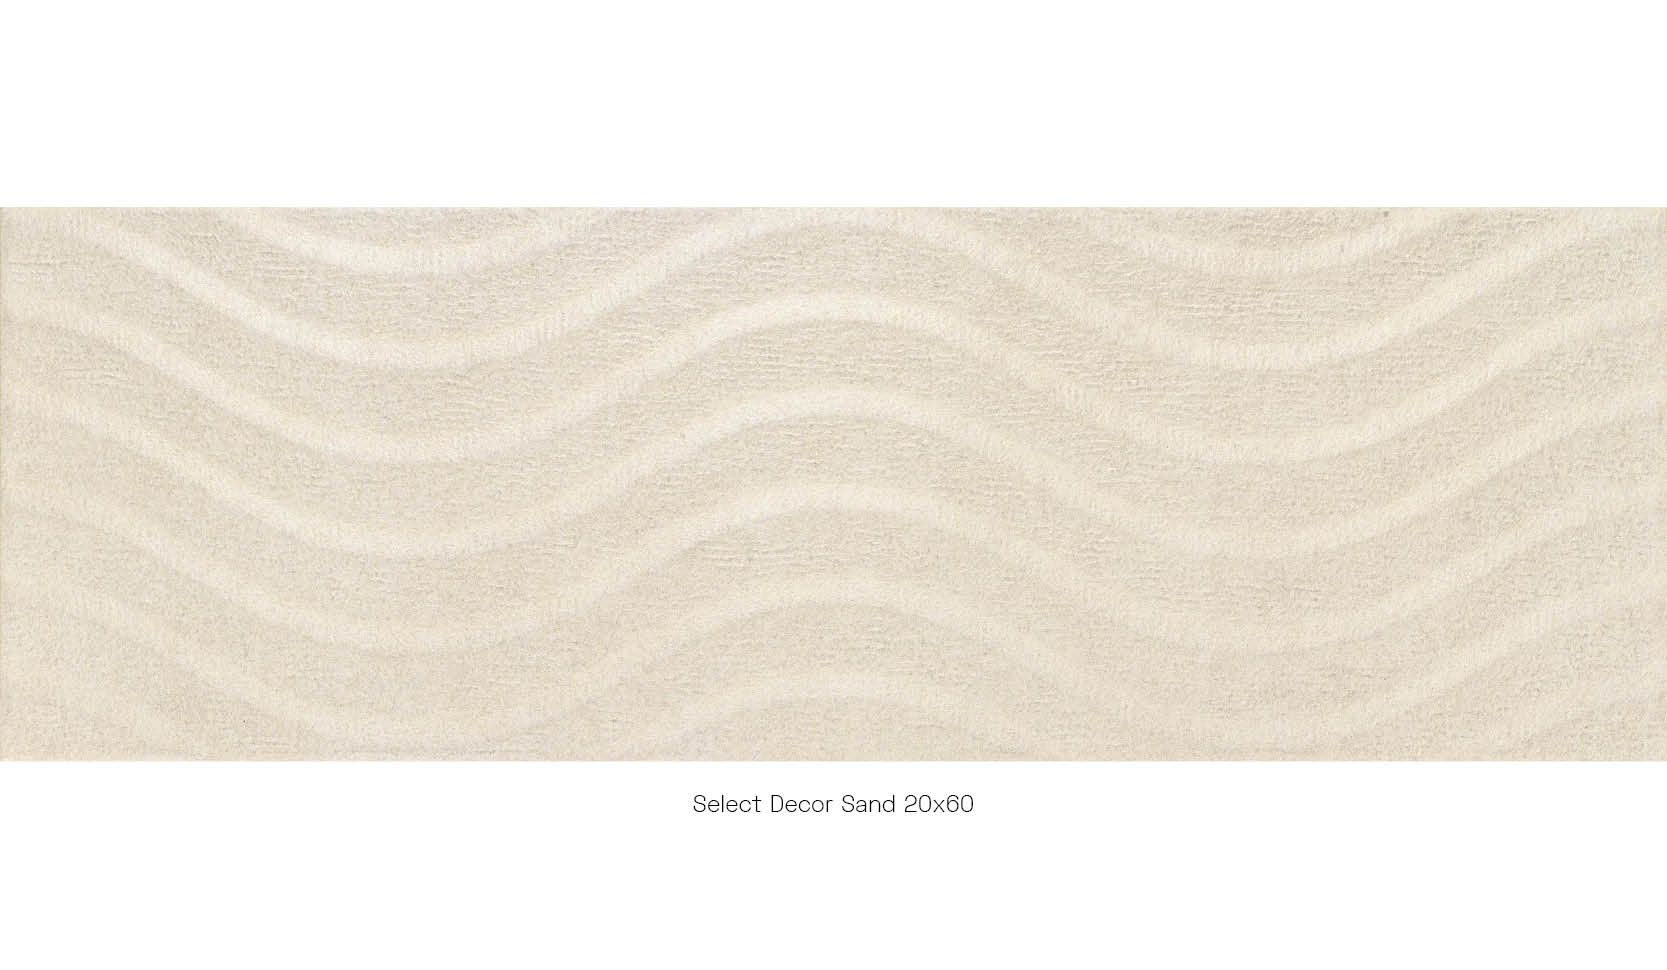 Select Decor Sand 20 x 60